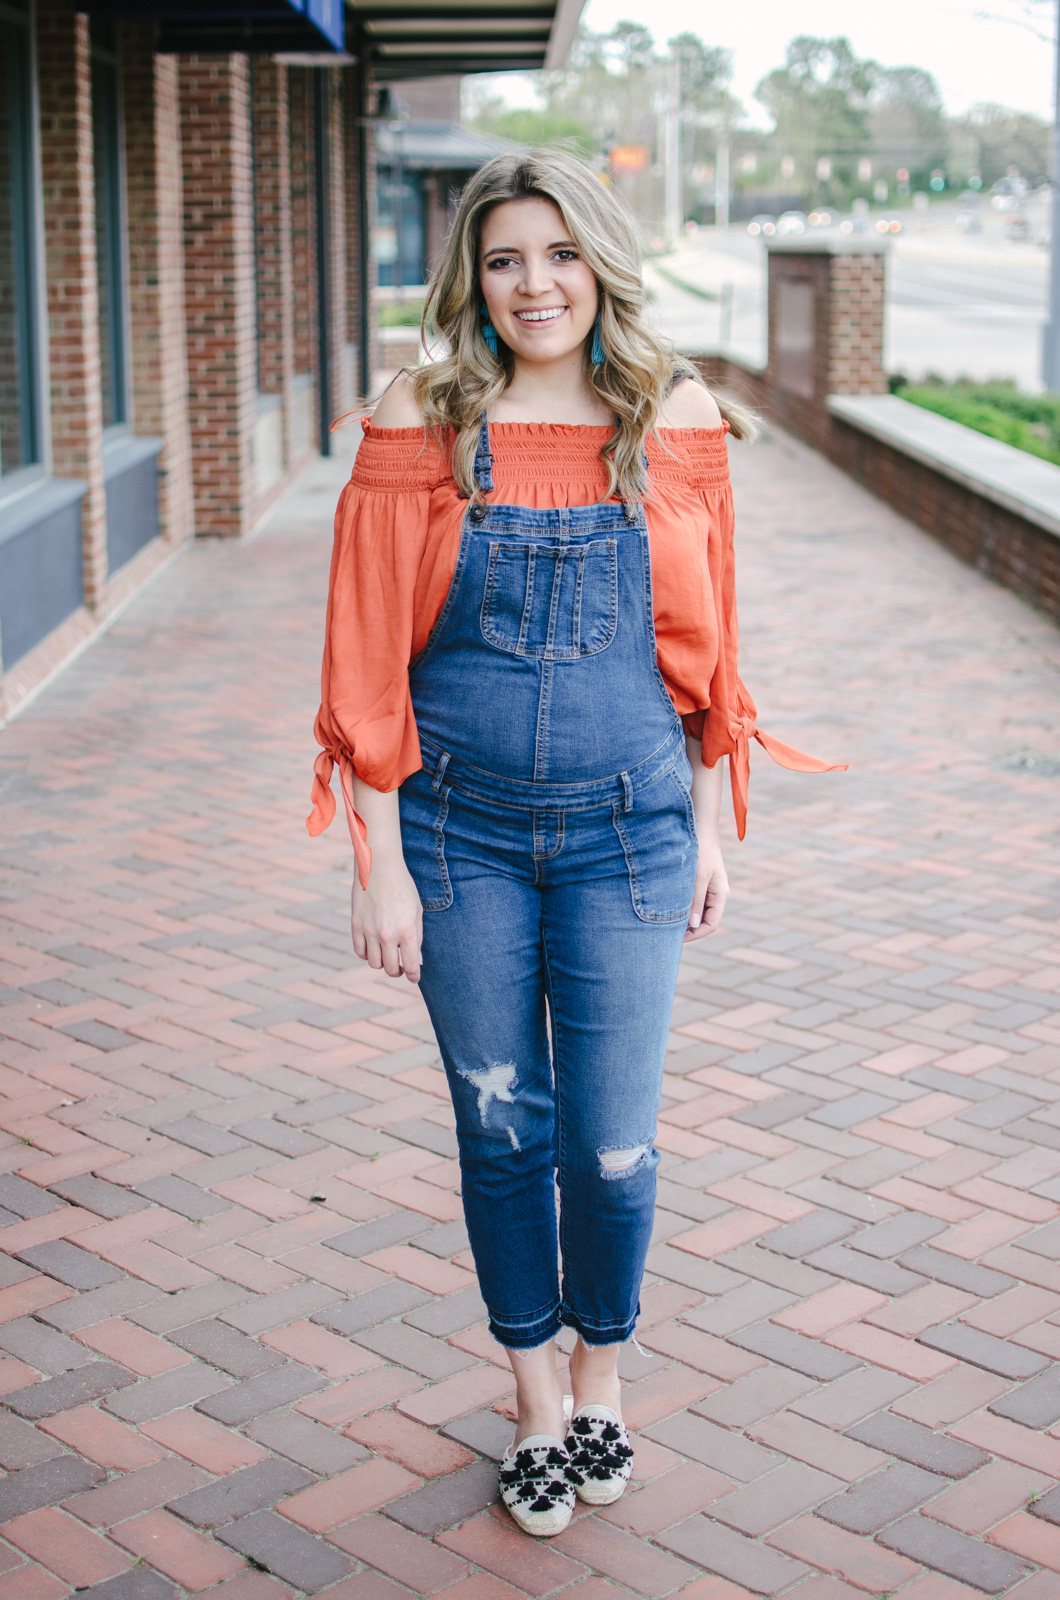 spring overalls outfit pregnancy - how wear overalls during pregnancy | bylaurenm.com